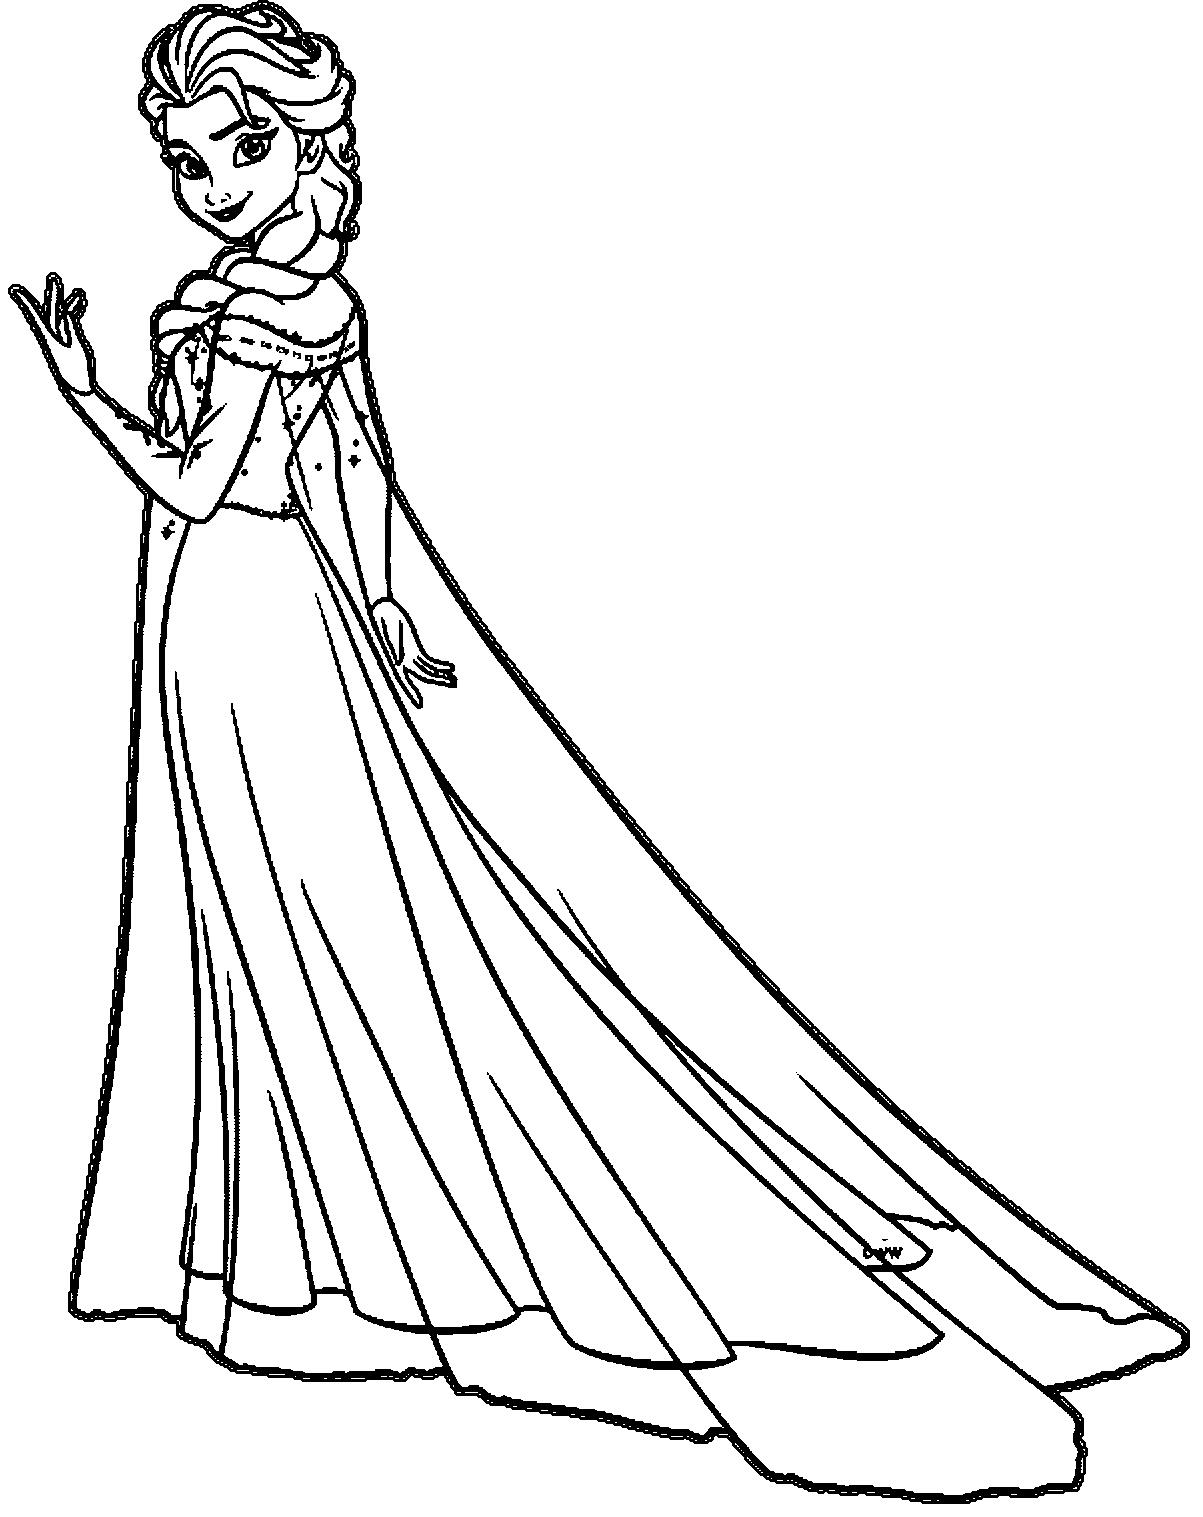 Coloring Pages Princess Elsa | Printable Coloring ...